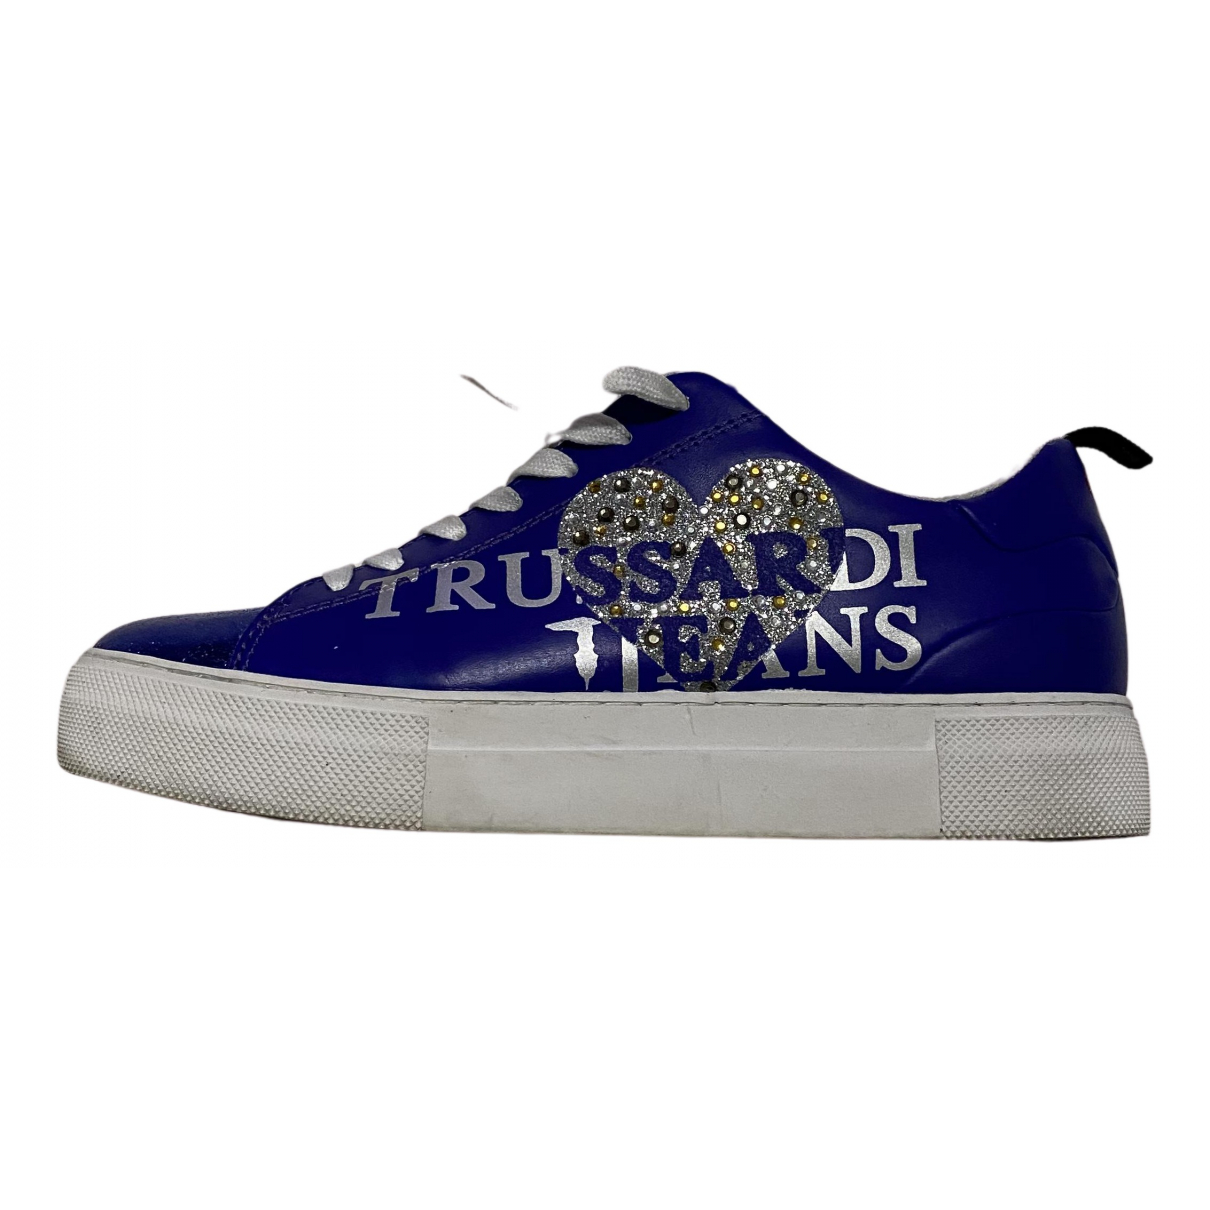 Trussardi Jeans N Blue Leather Trainers for Women 37 IT